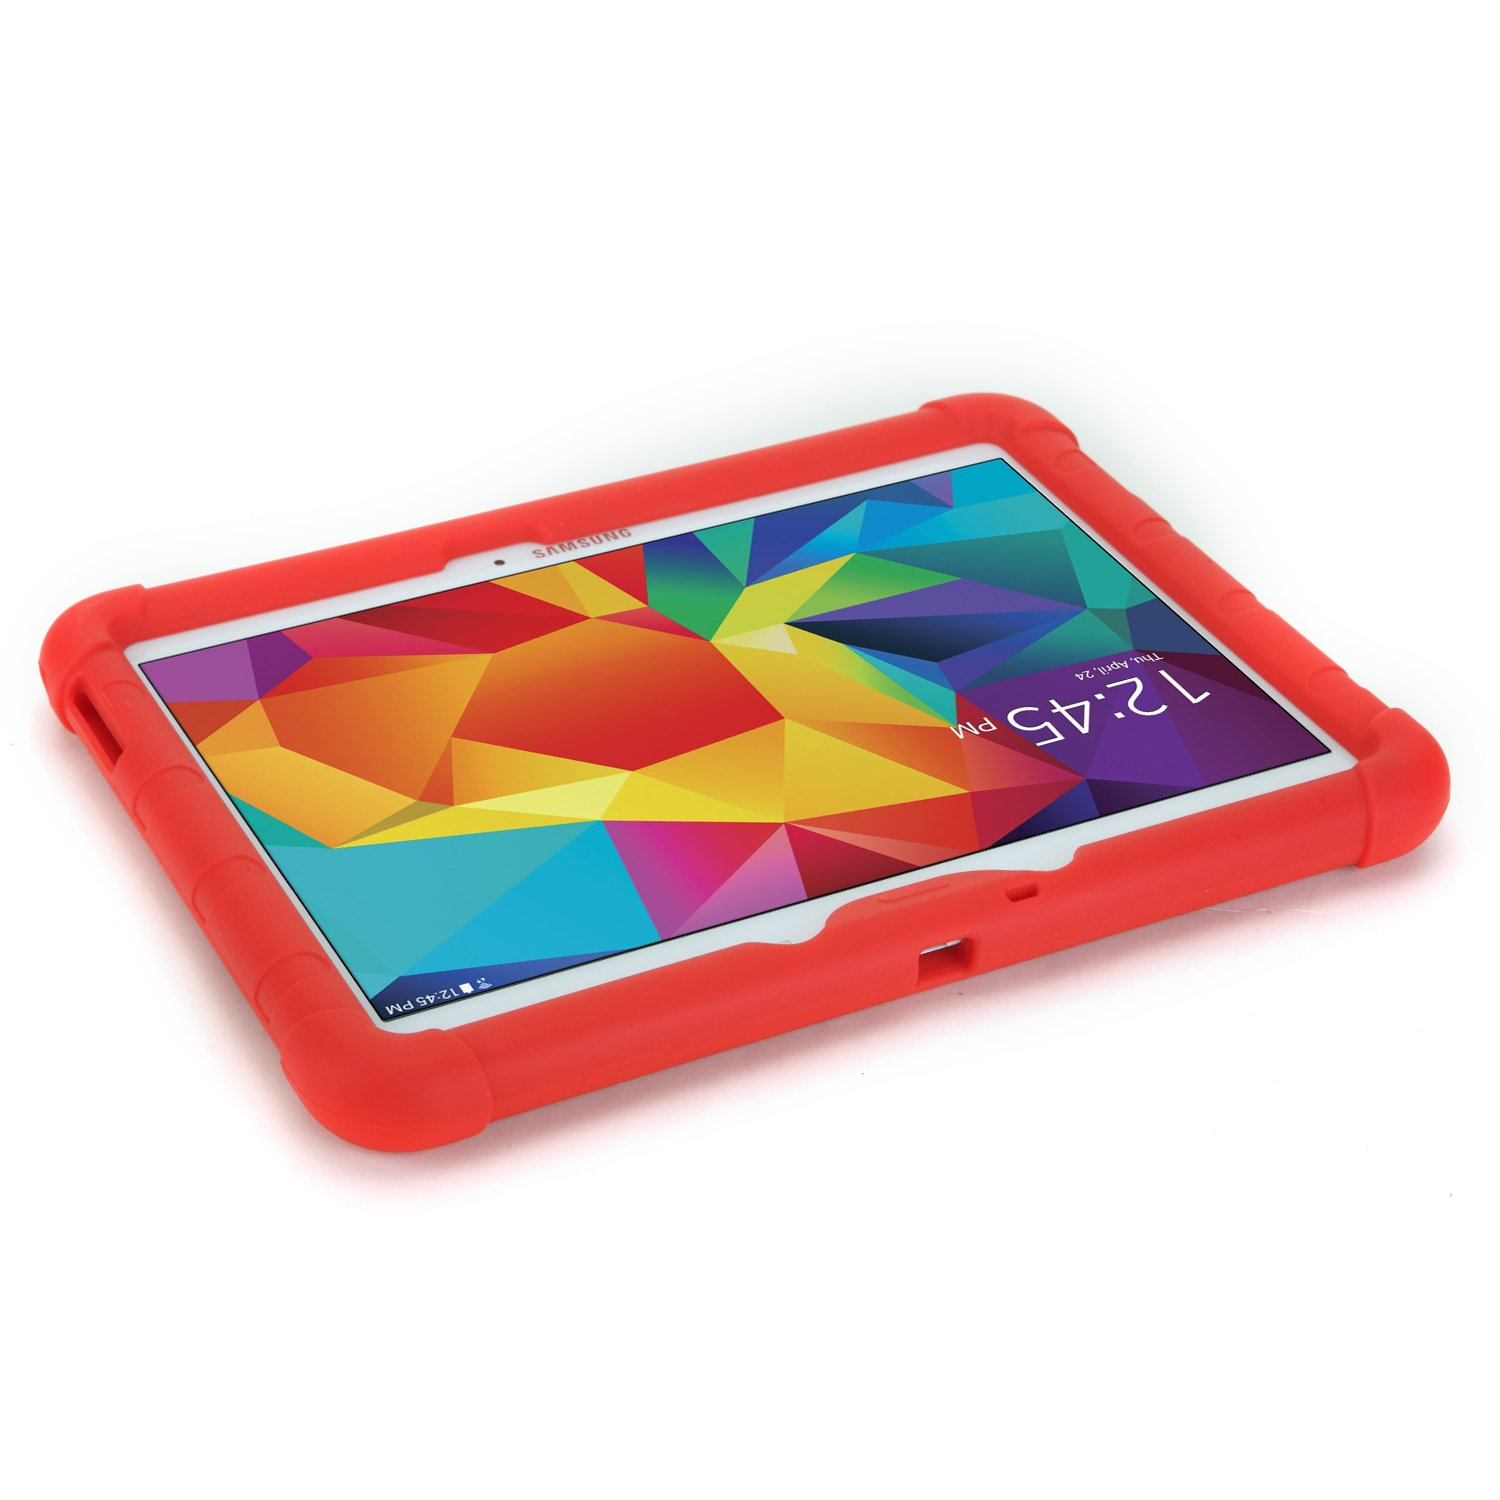 Toddler Proof Case For Samsung Galaxy Tab 4